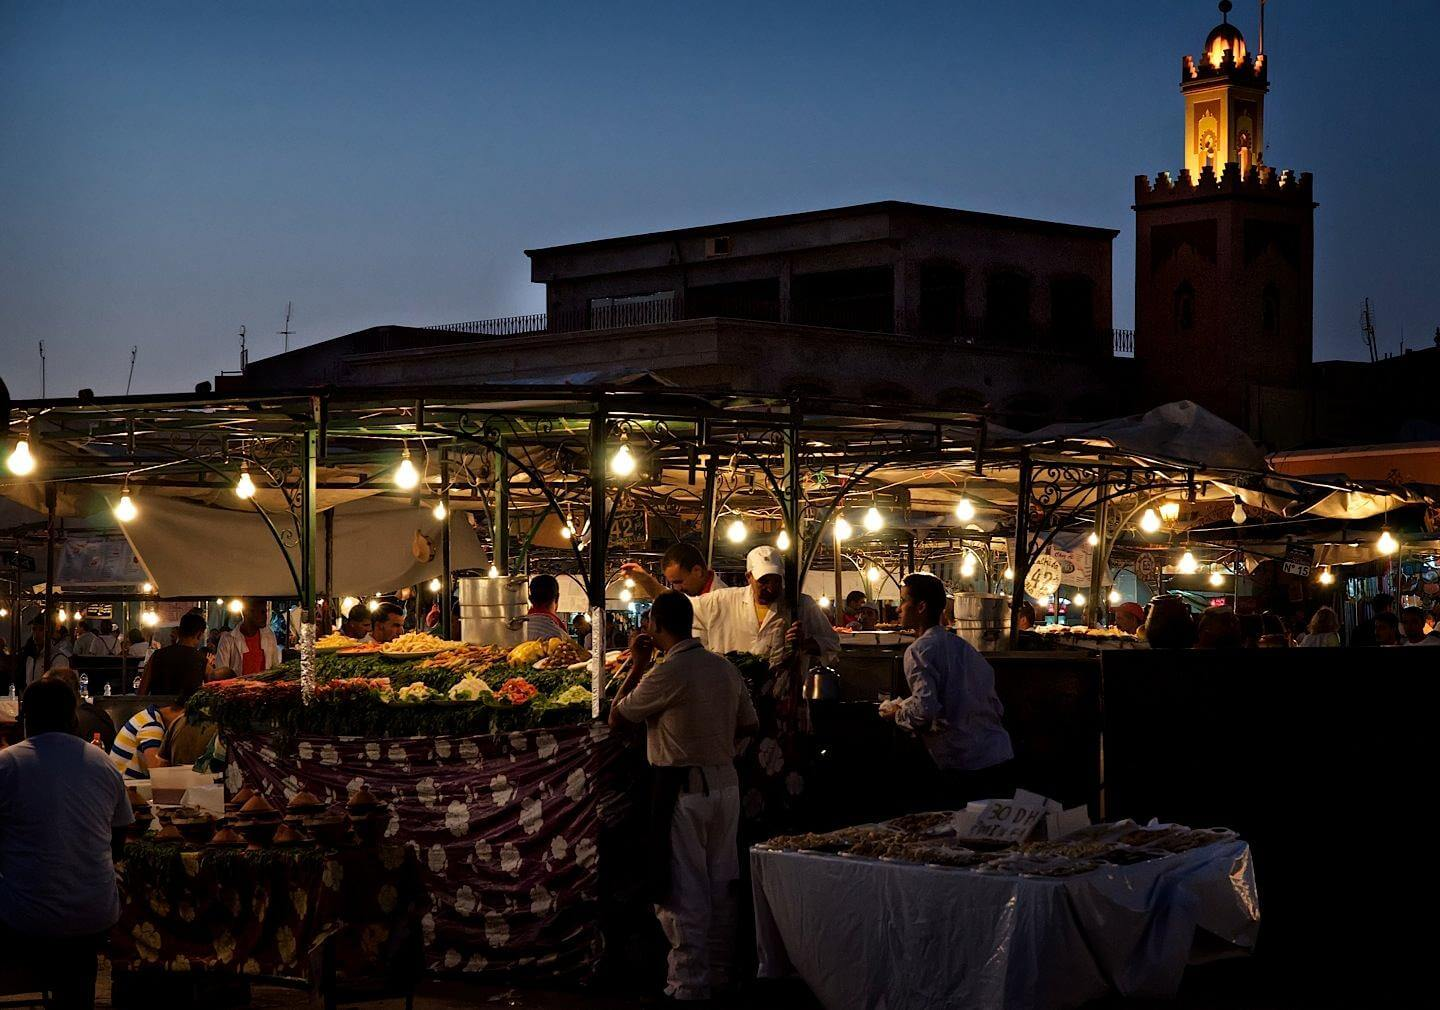 Jemaa el-Fnaa square filled with food stalls